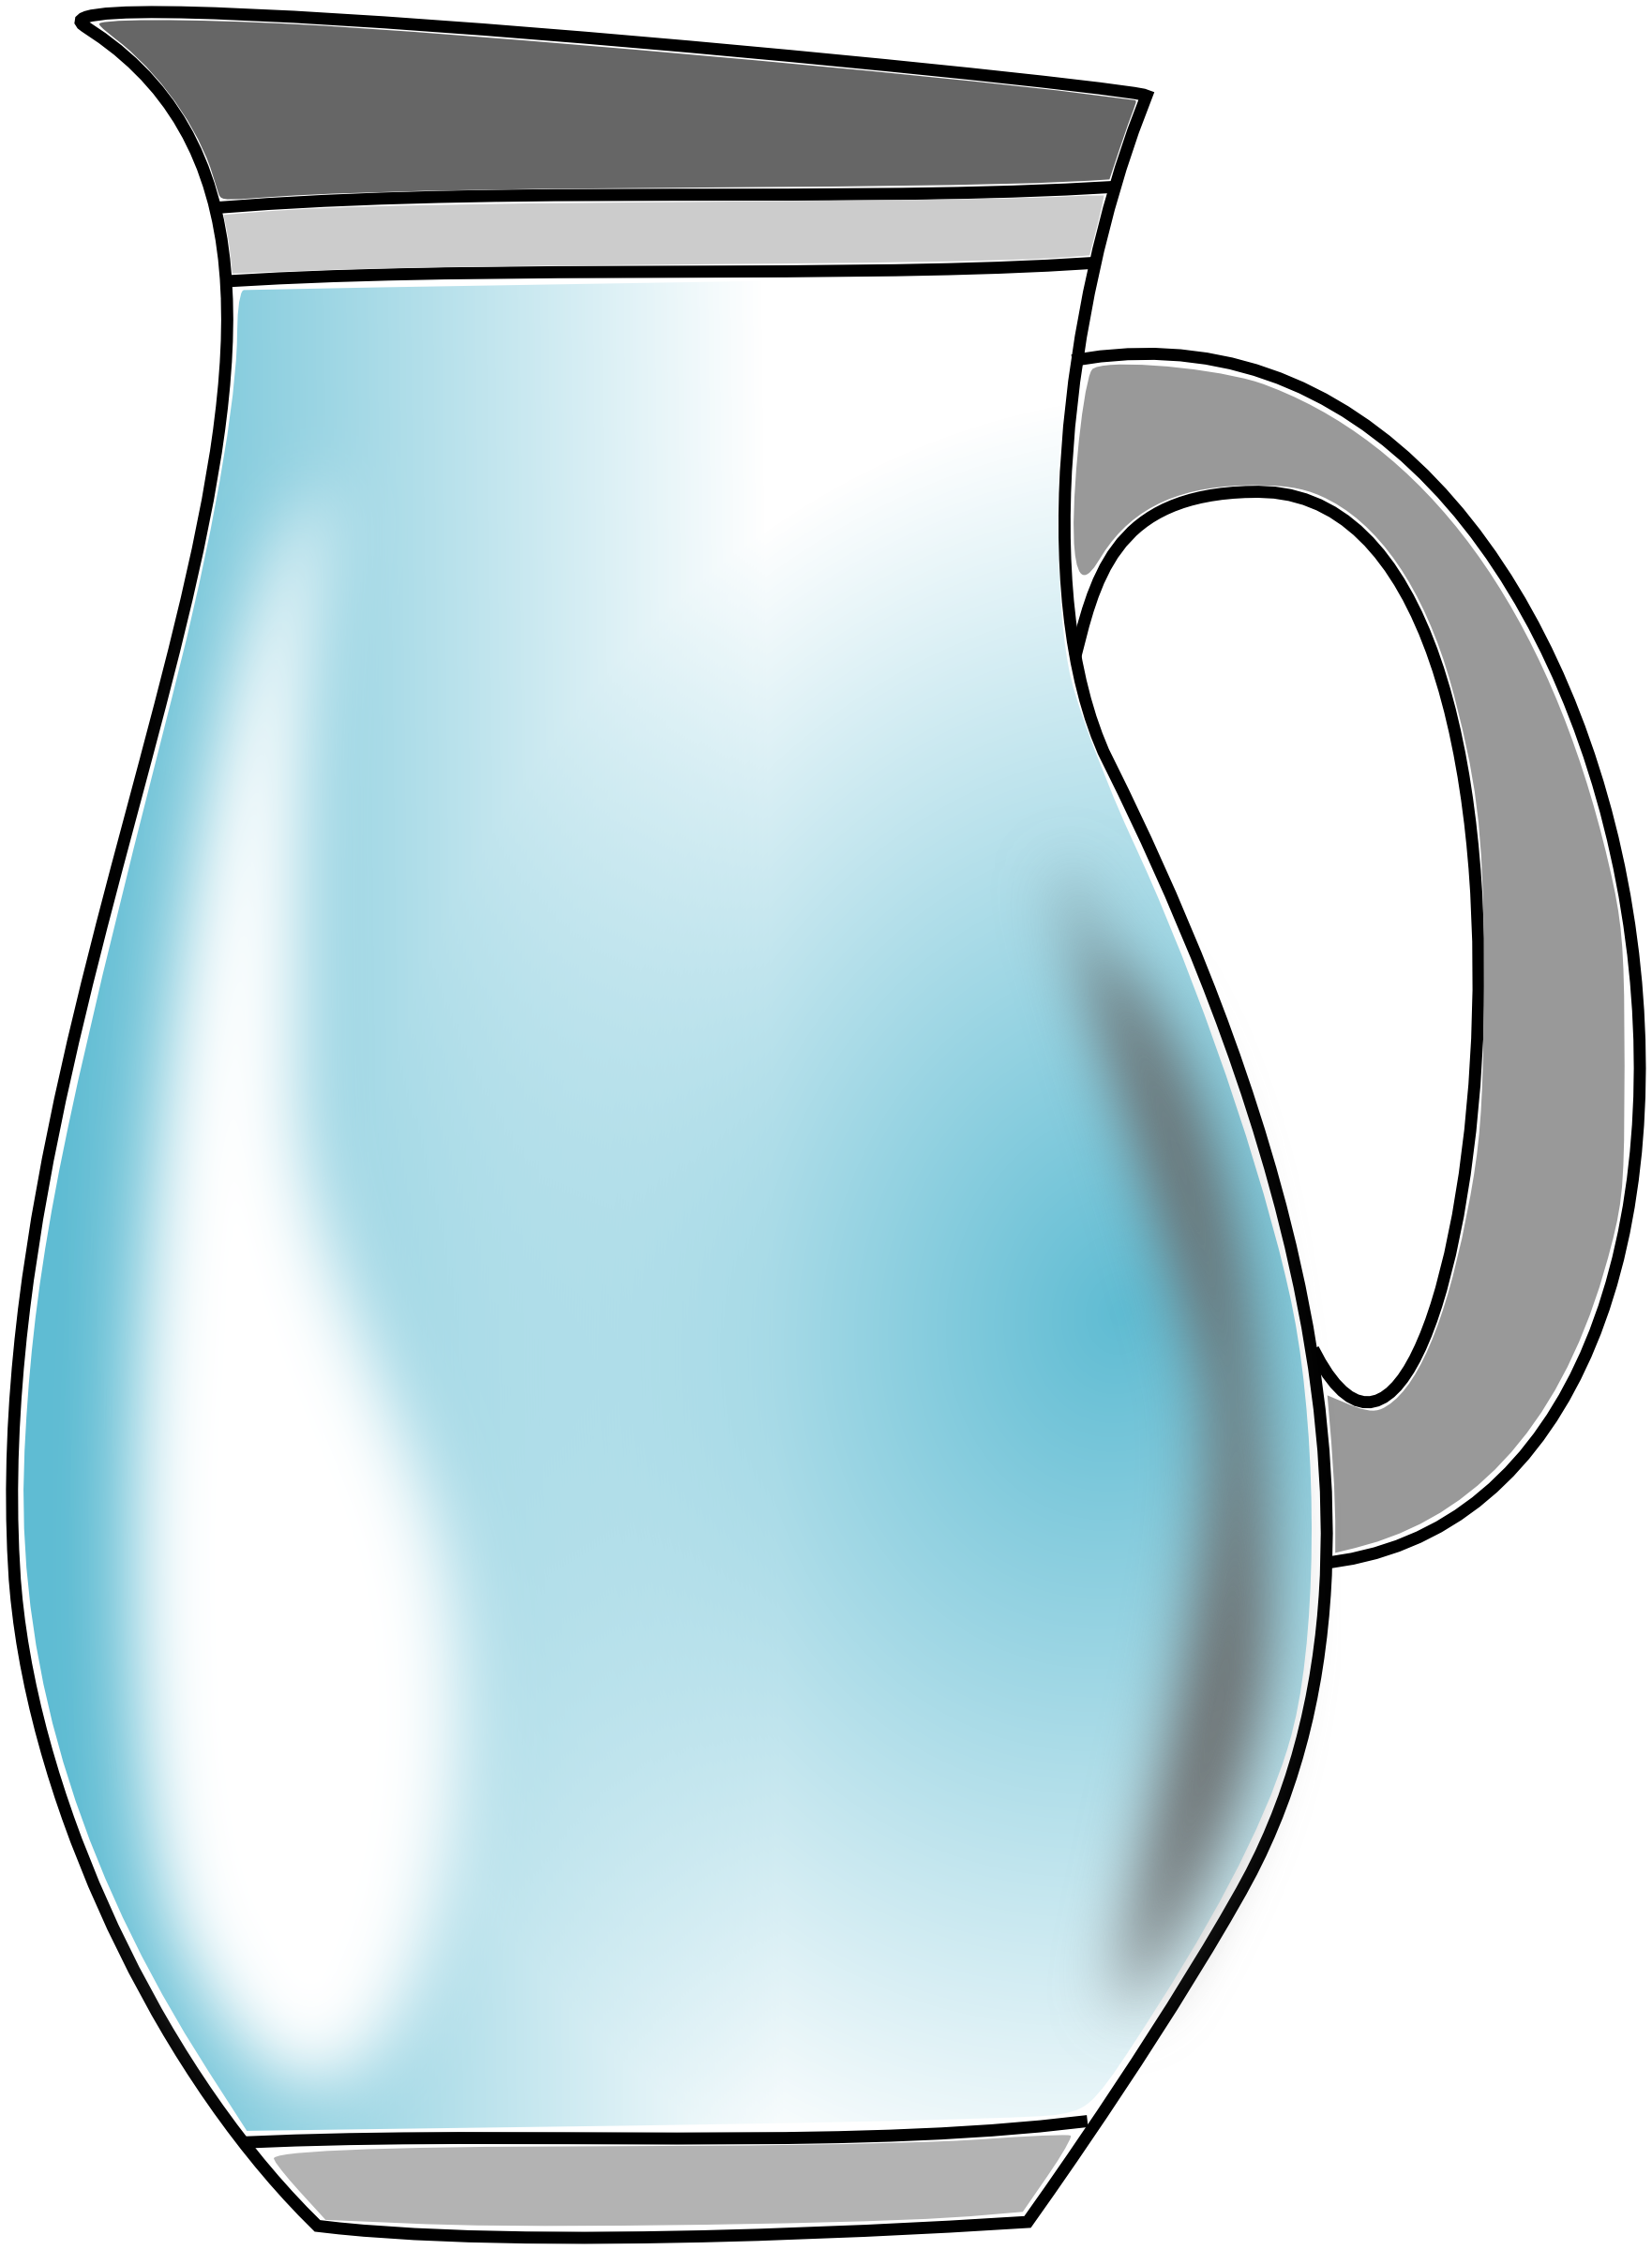 Pitcher Of Water Clipart.